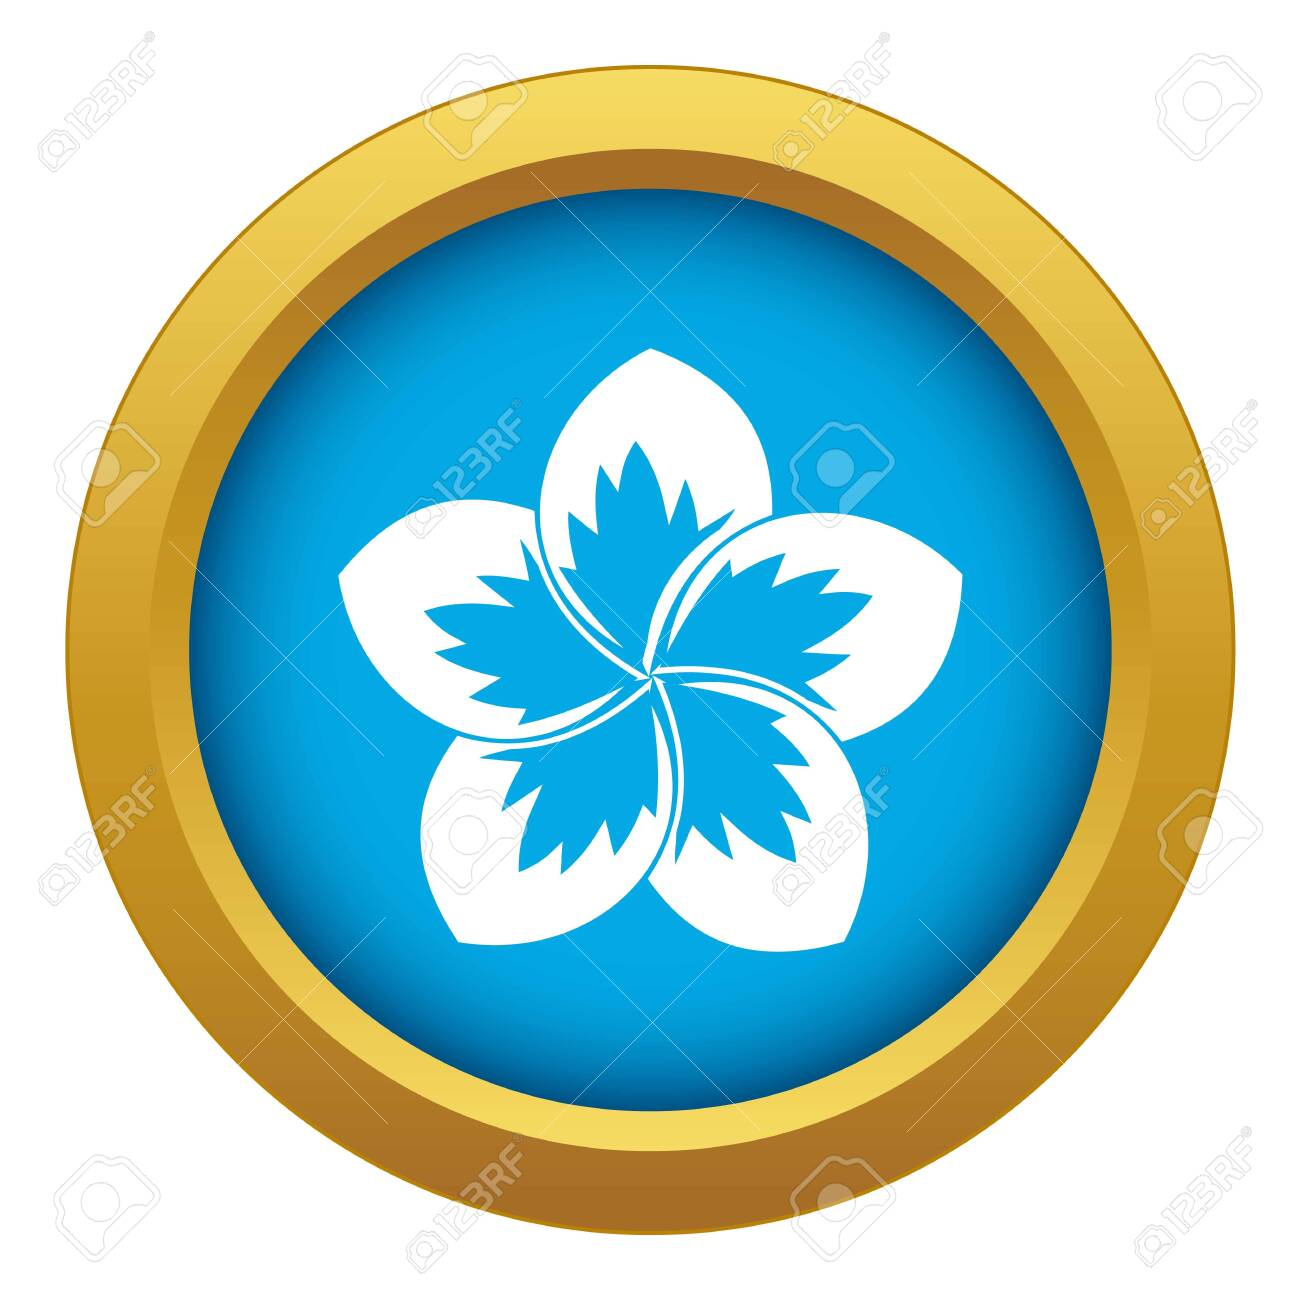 Frangipani flower icon blue vector isolated on white background for any design - 130251916